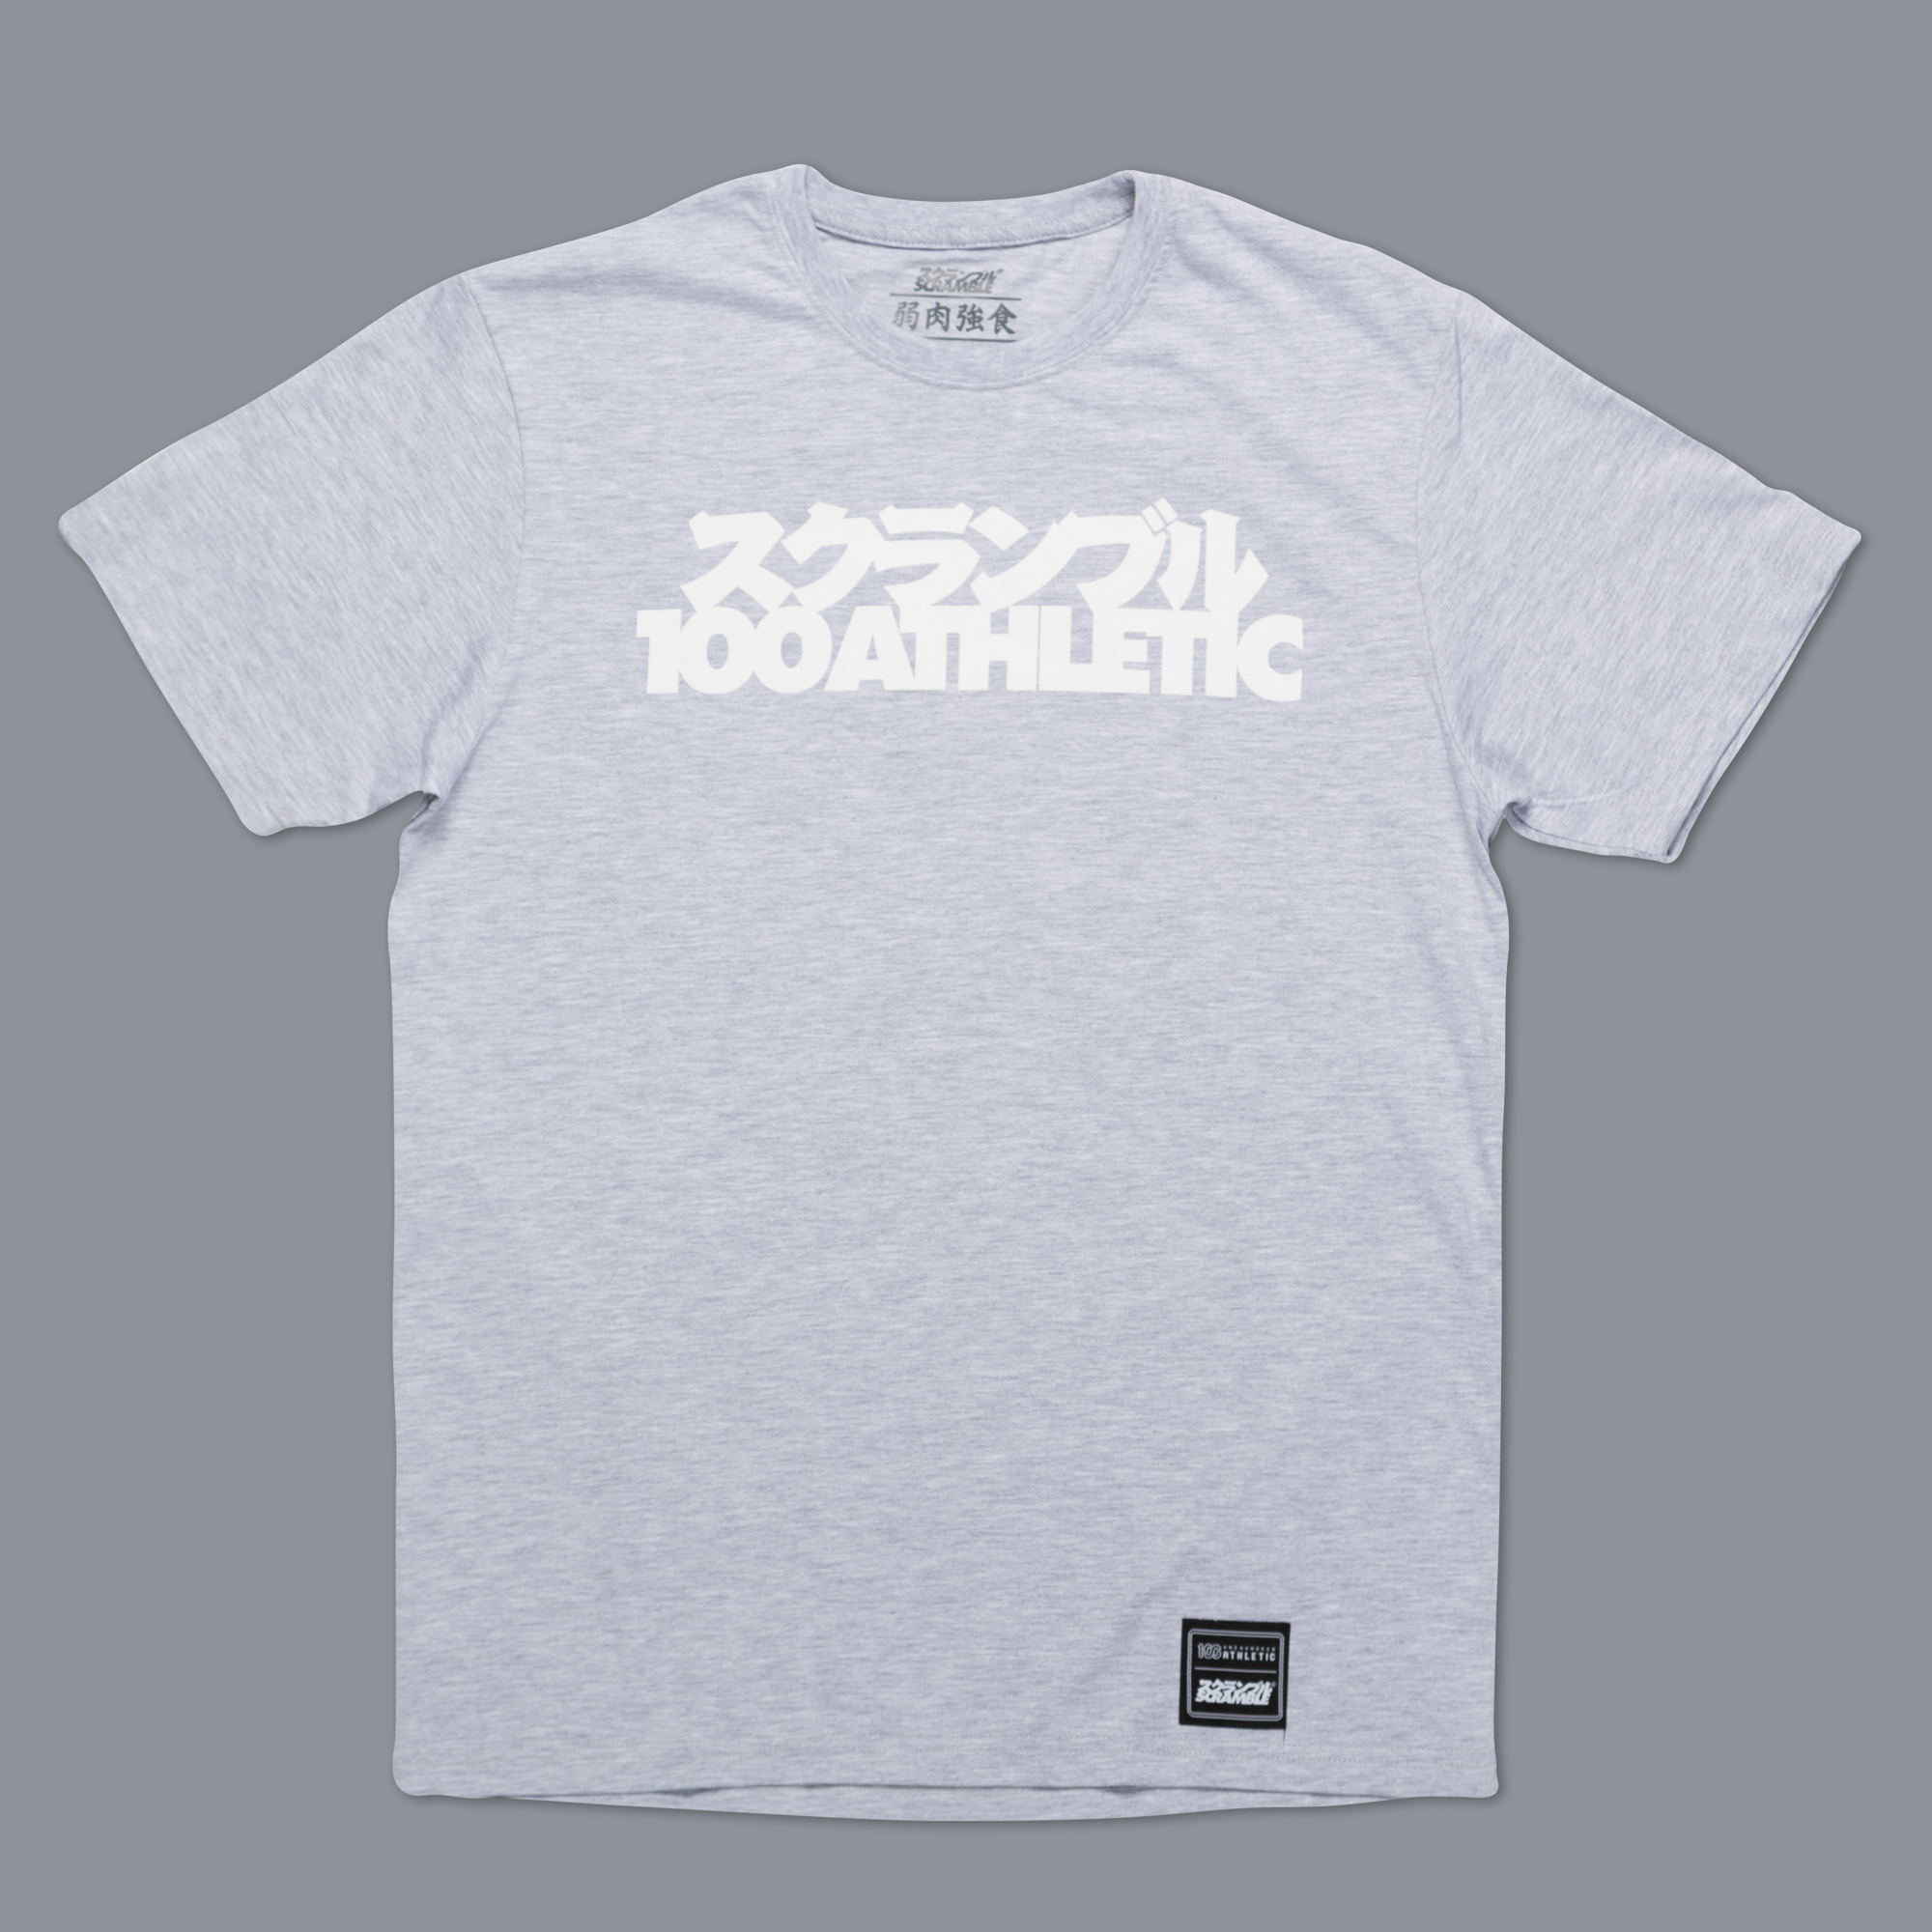 SCRAMBLE X 100ATHLETIC TEE – GREY